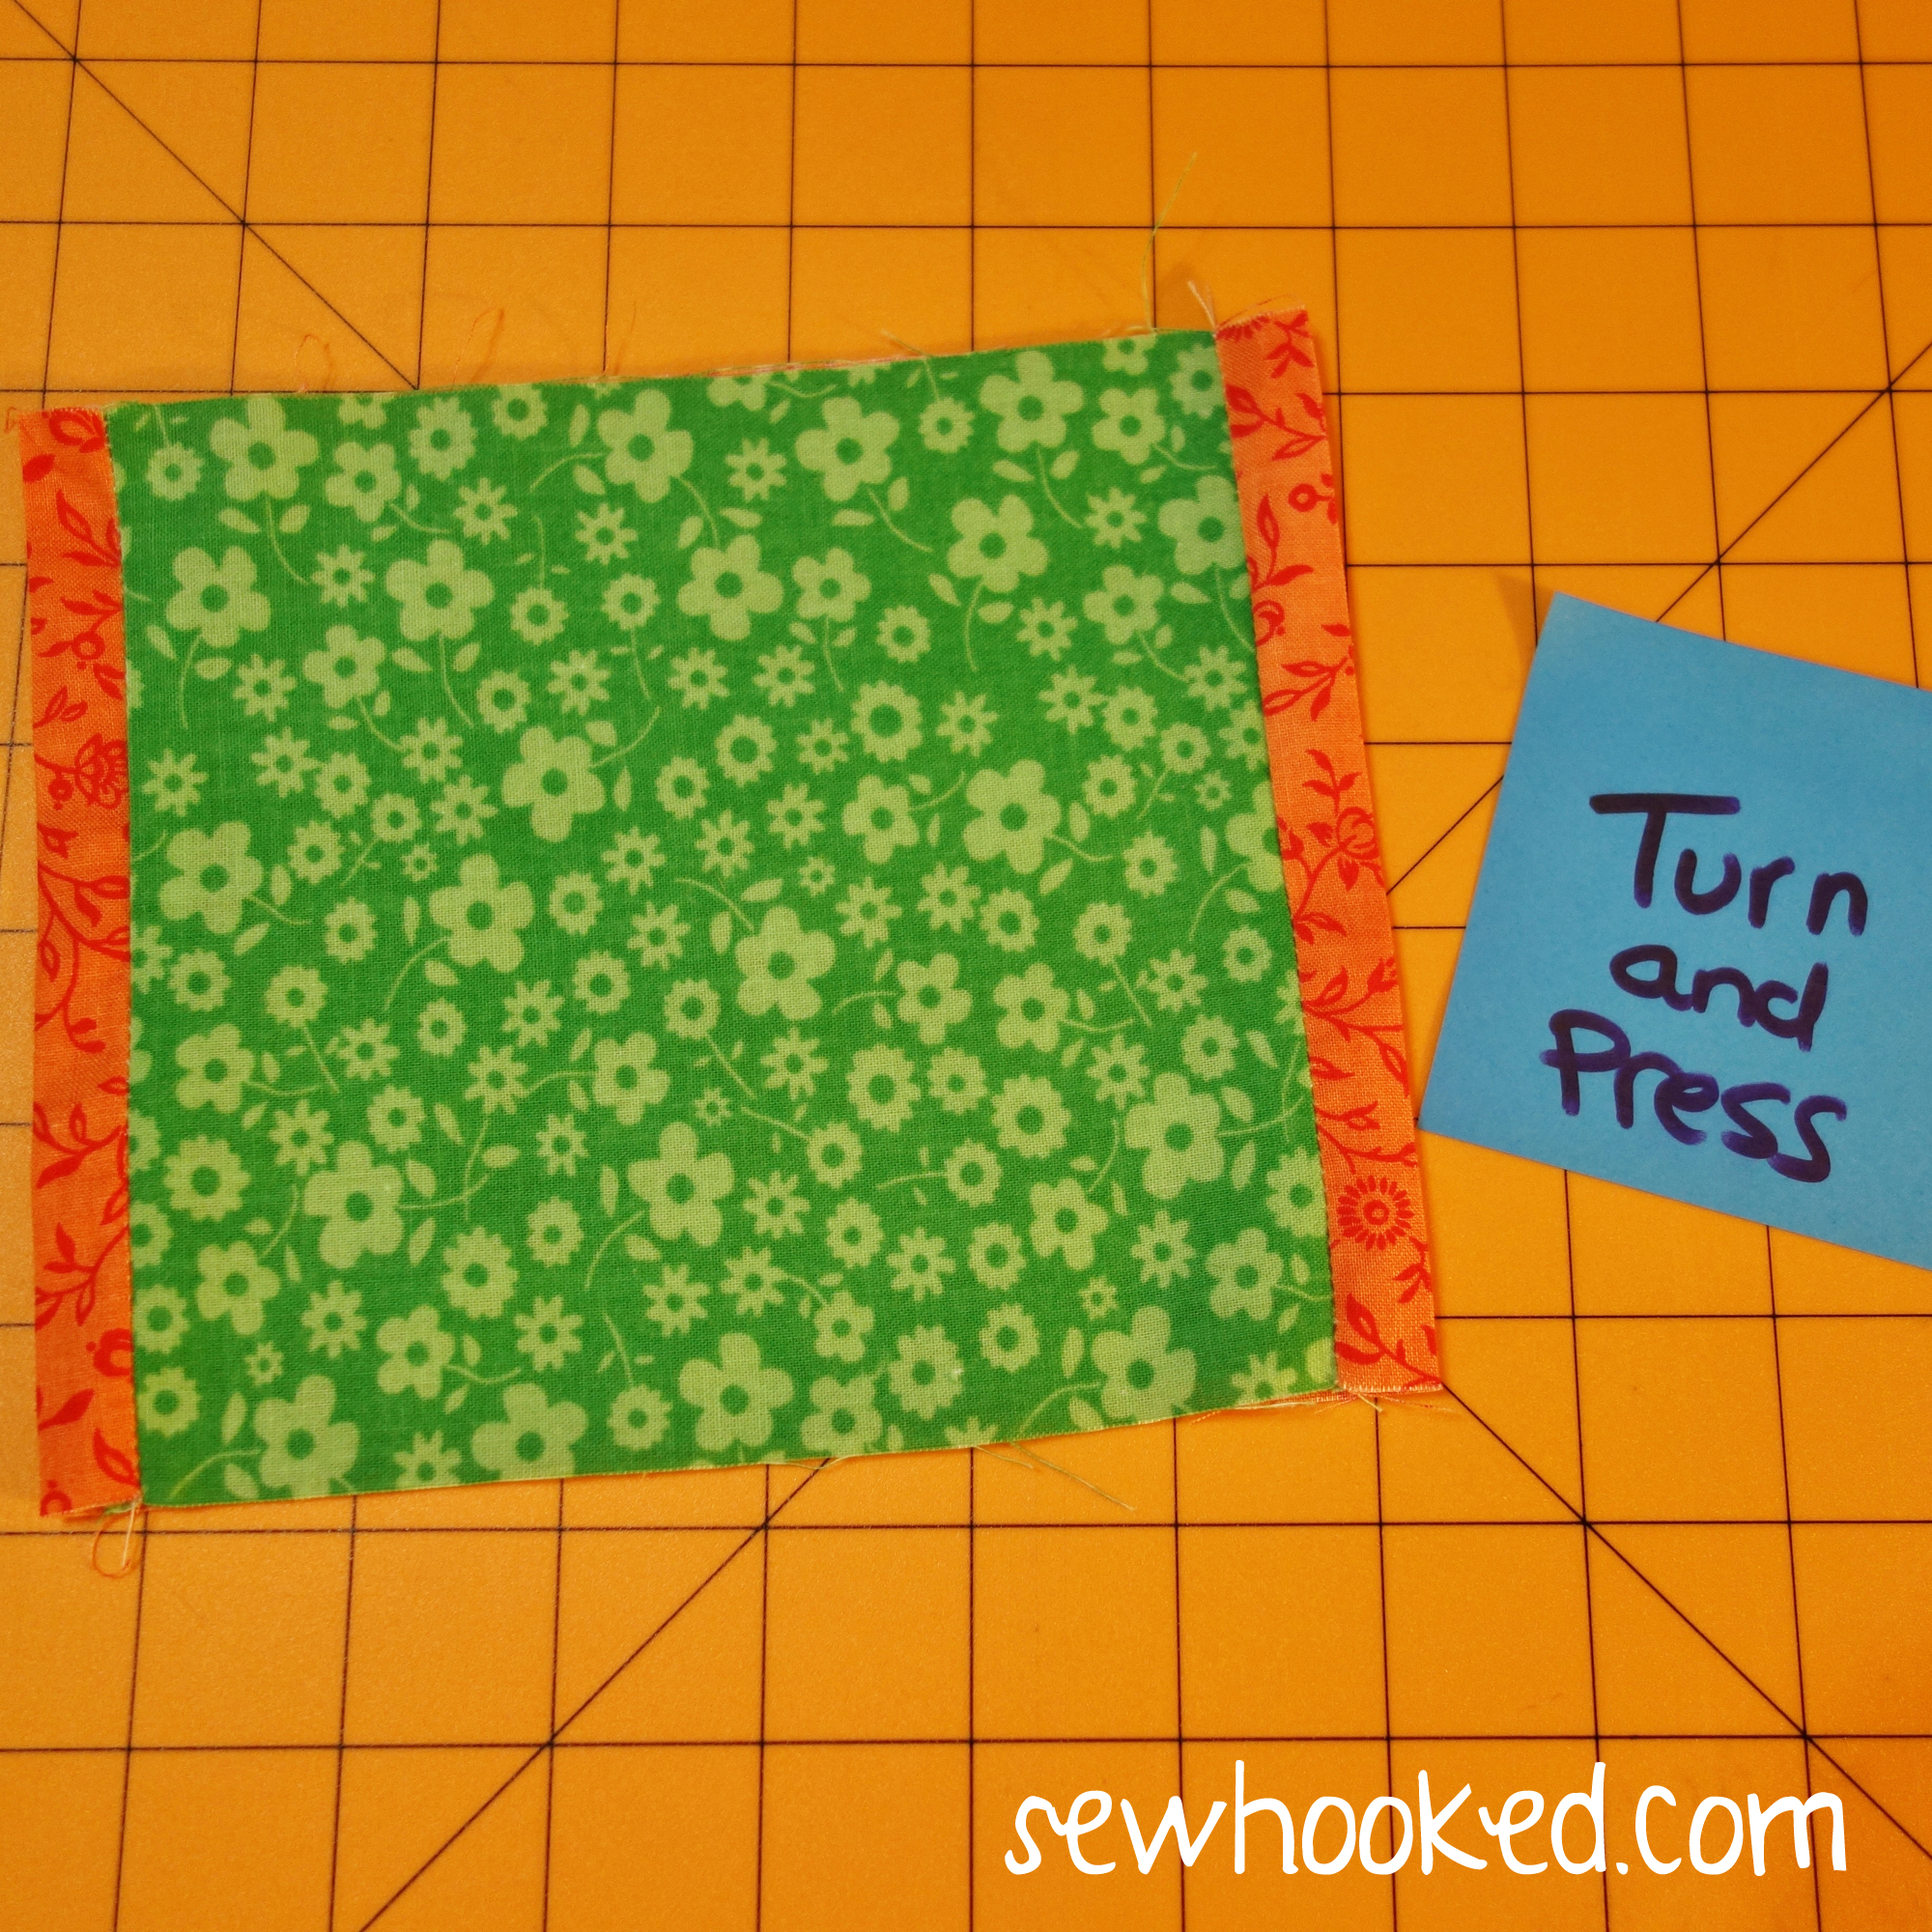 tissue-tutorial-2017-03-for-sewhooked-13